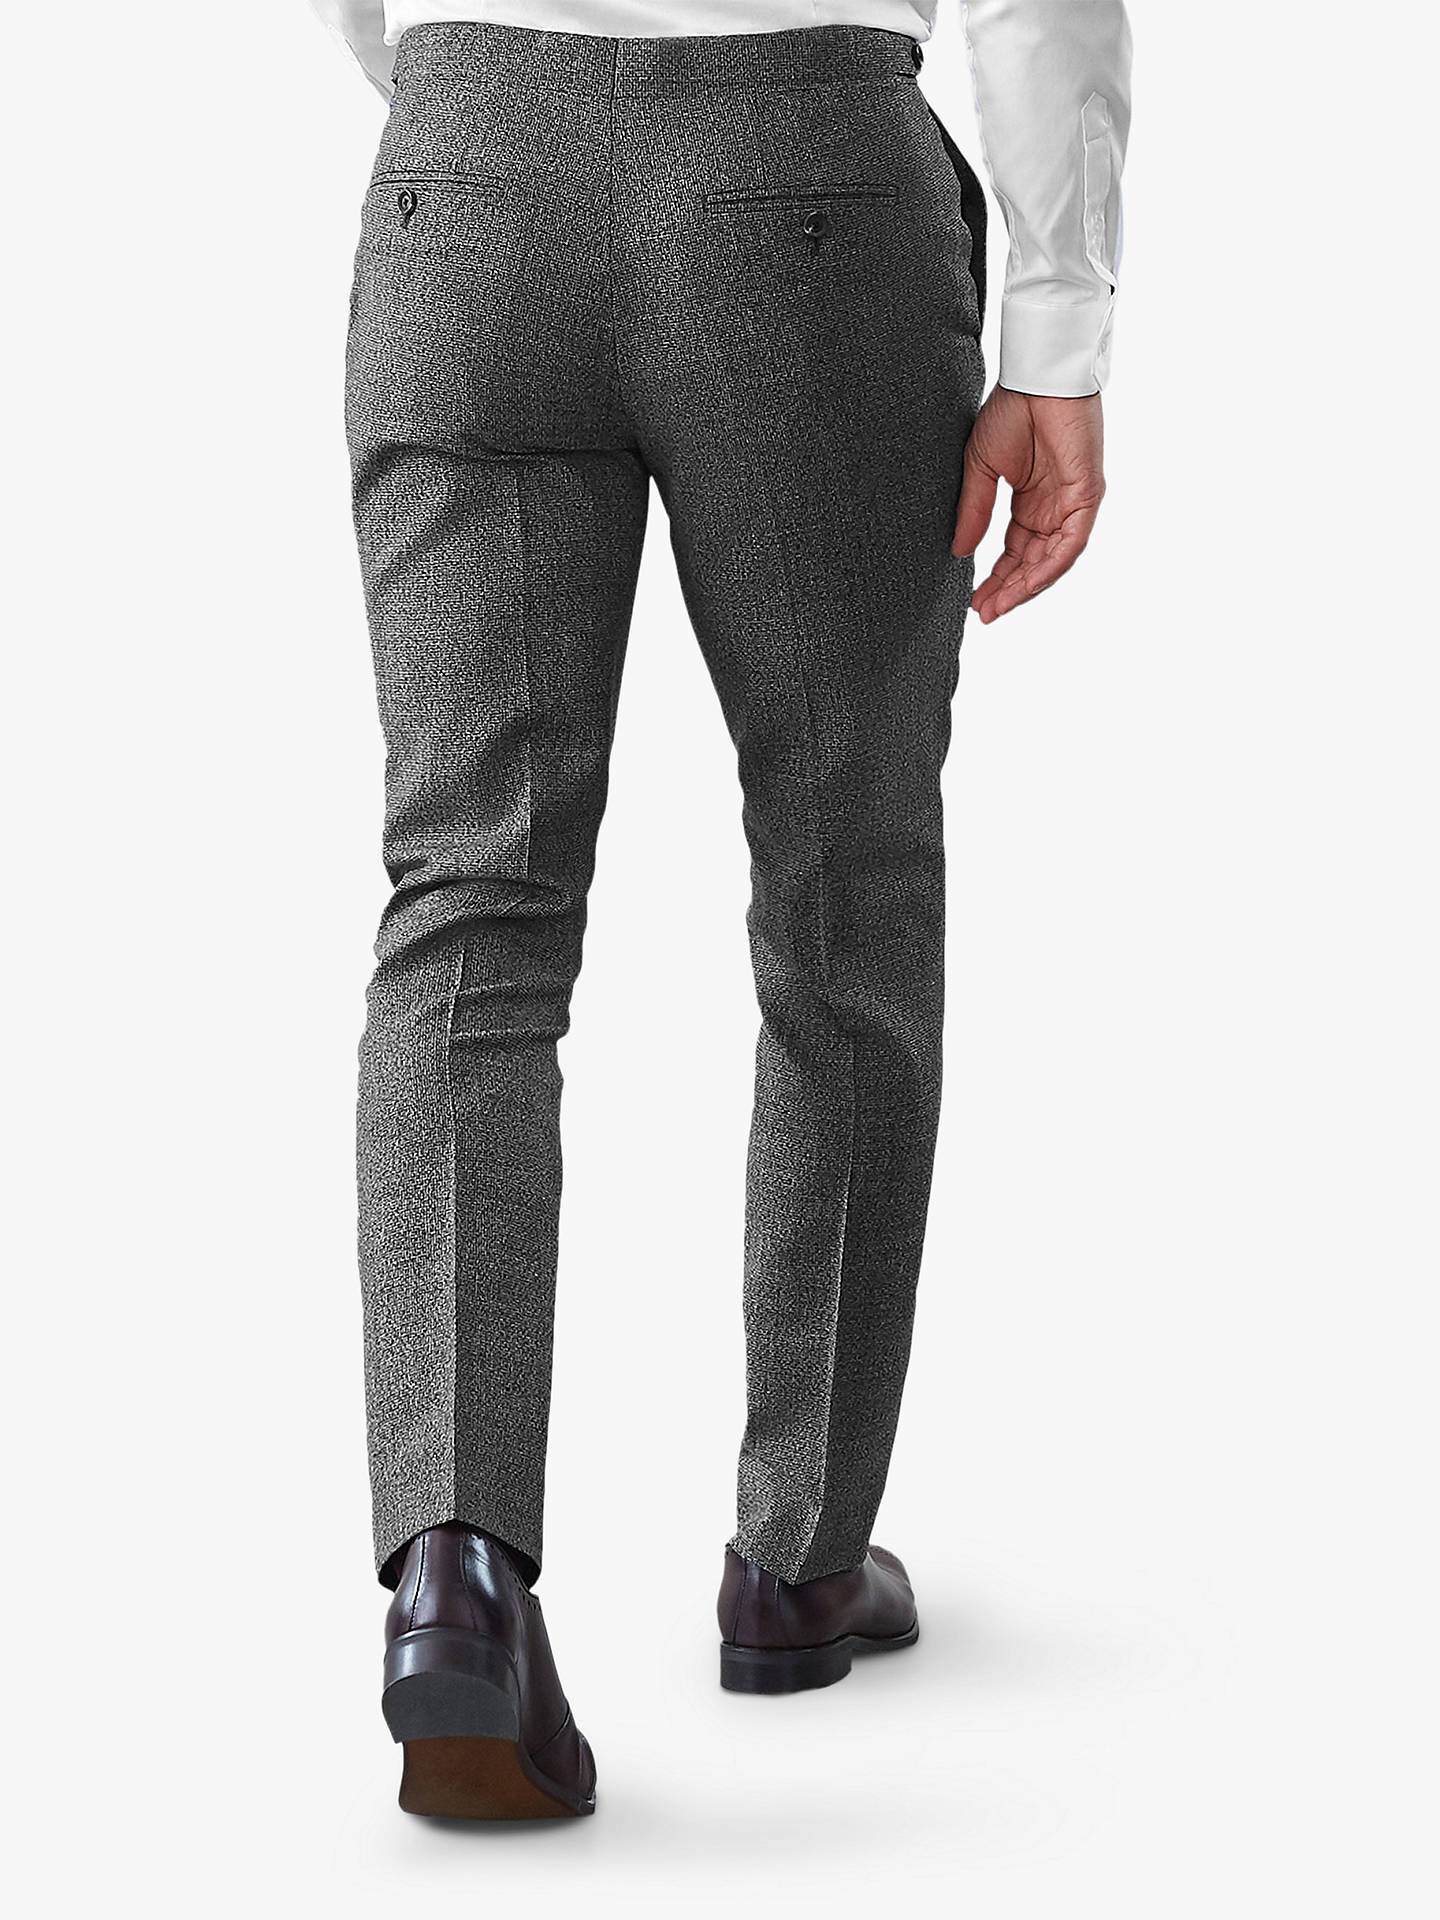 BuyReiss Gere Textured Wool Slim Fit Suit Trousers, Charcoal, 34R Online at johnlewis.com